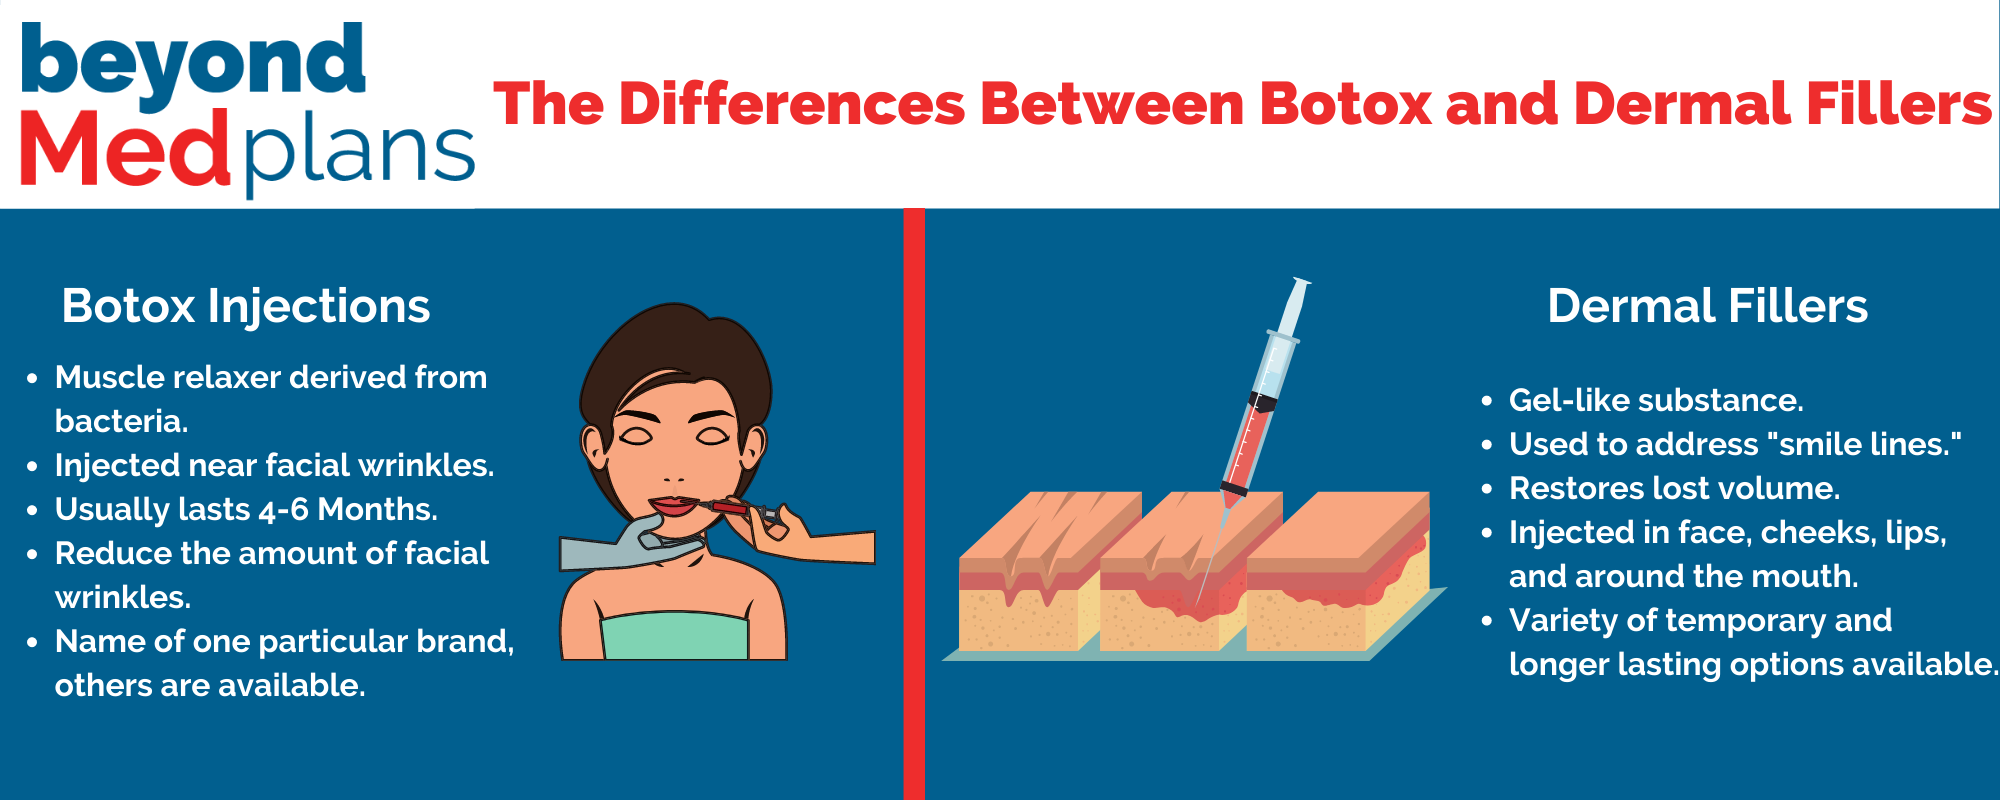 Infographic explaining the differences between Botox and dermal fillers.